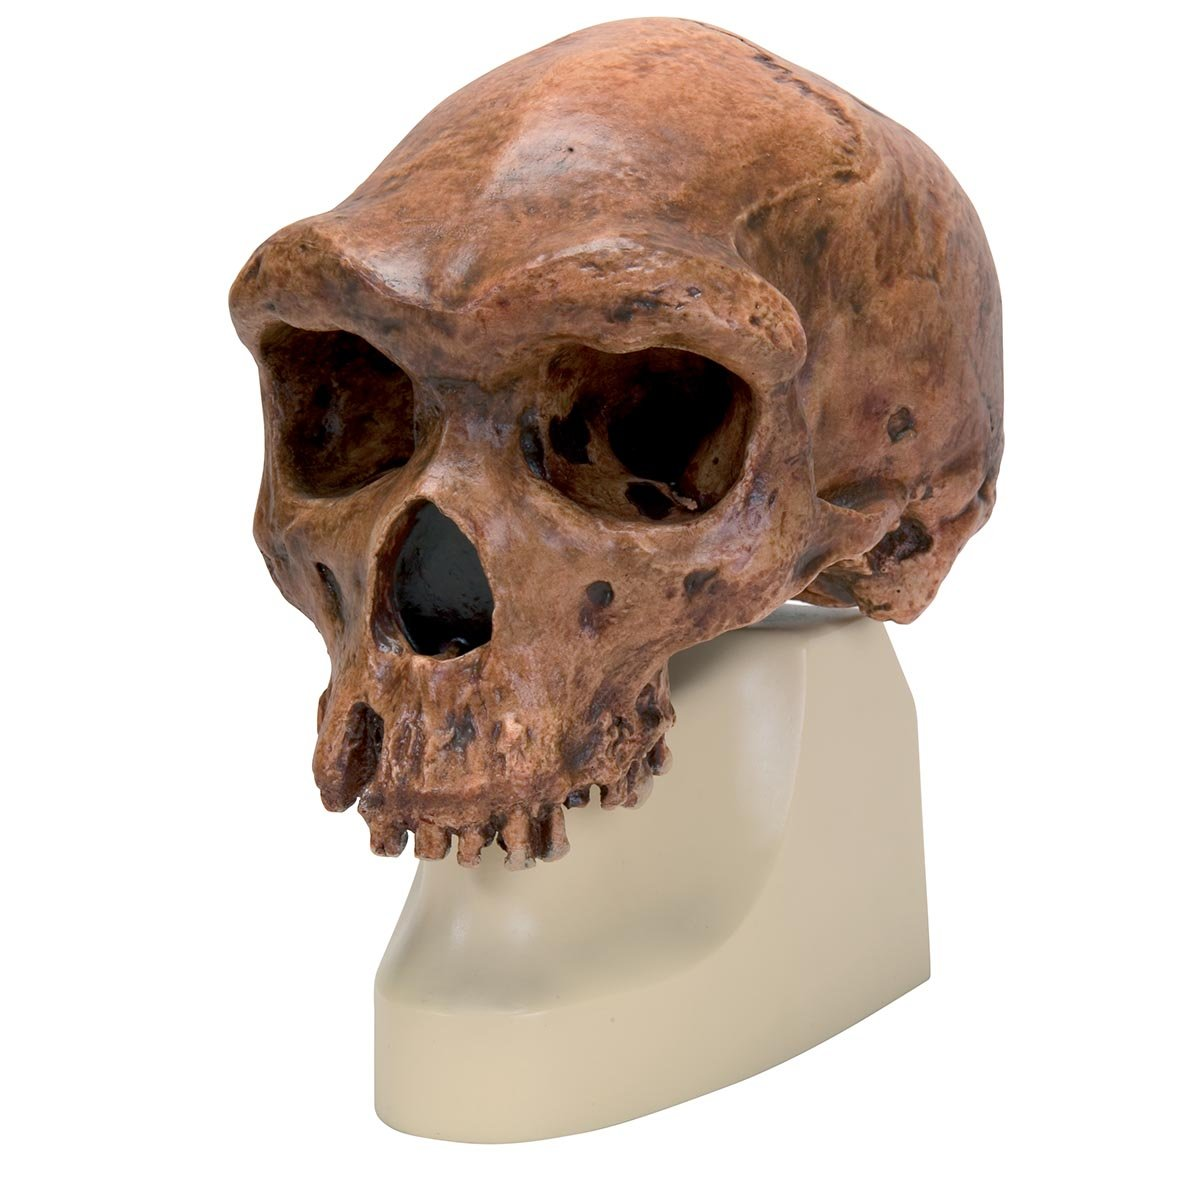 3B Scientific VP754/1 Ré plica del Crá neo del Homo Rhodesiensis, Broken Hill, Woodward, 1921 3B Scientific GmbH